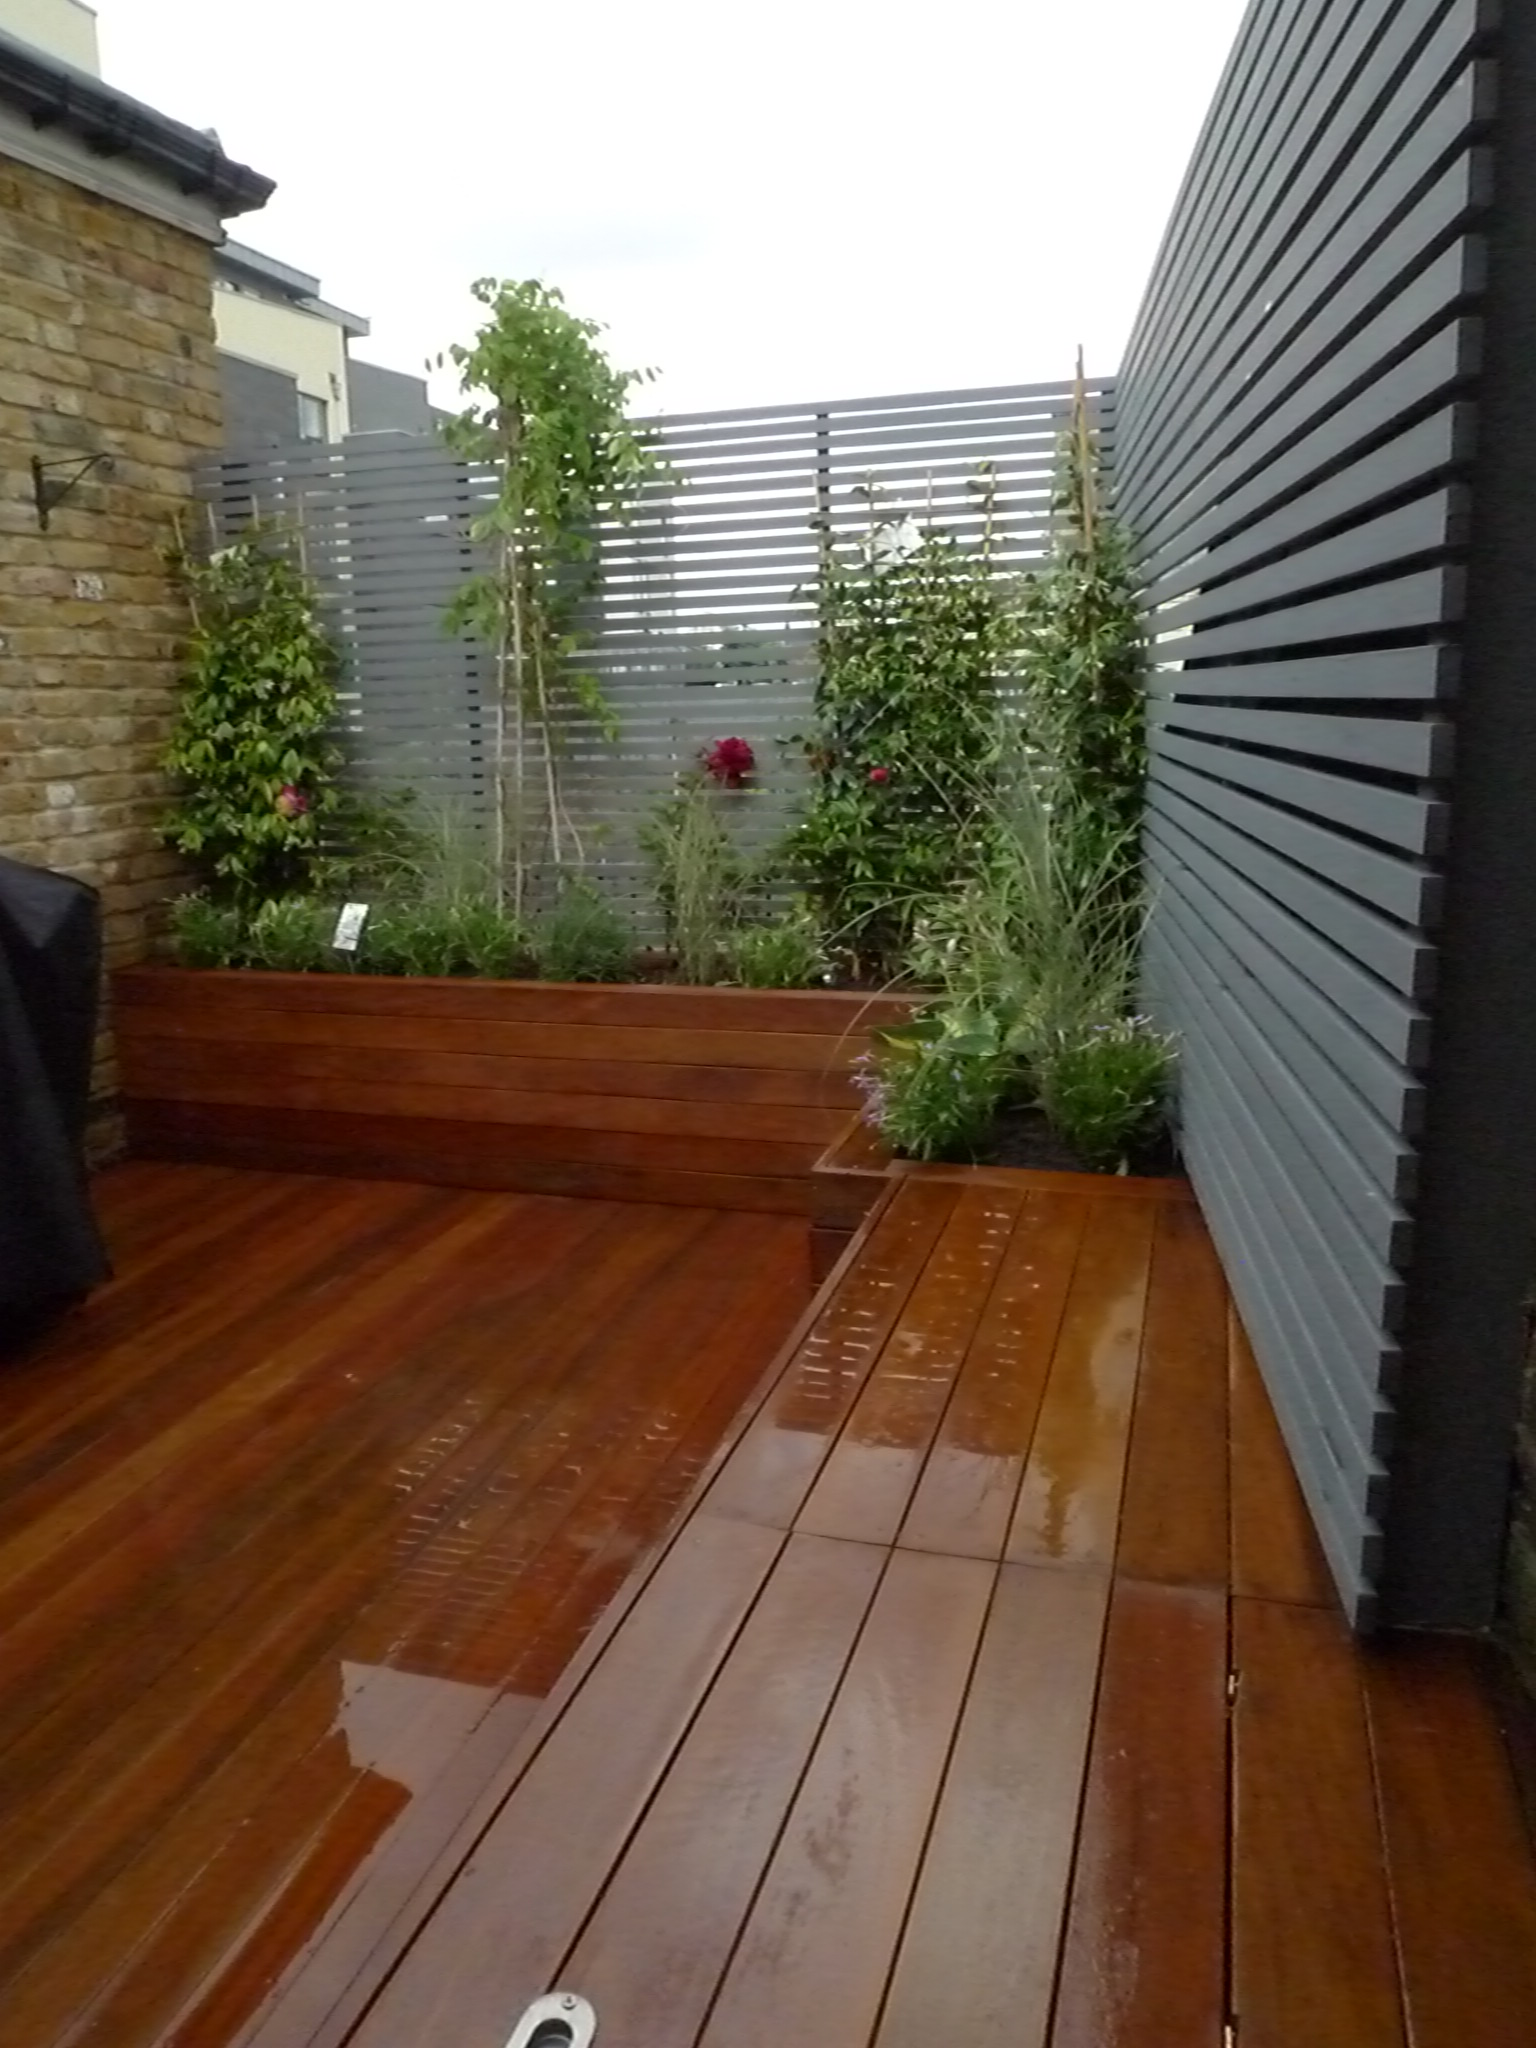 London small roof garden ideas london garden design for Balcony roof ideas